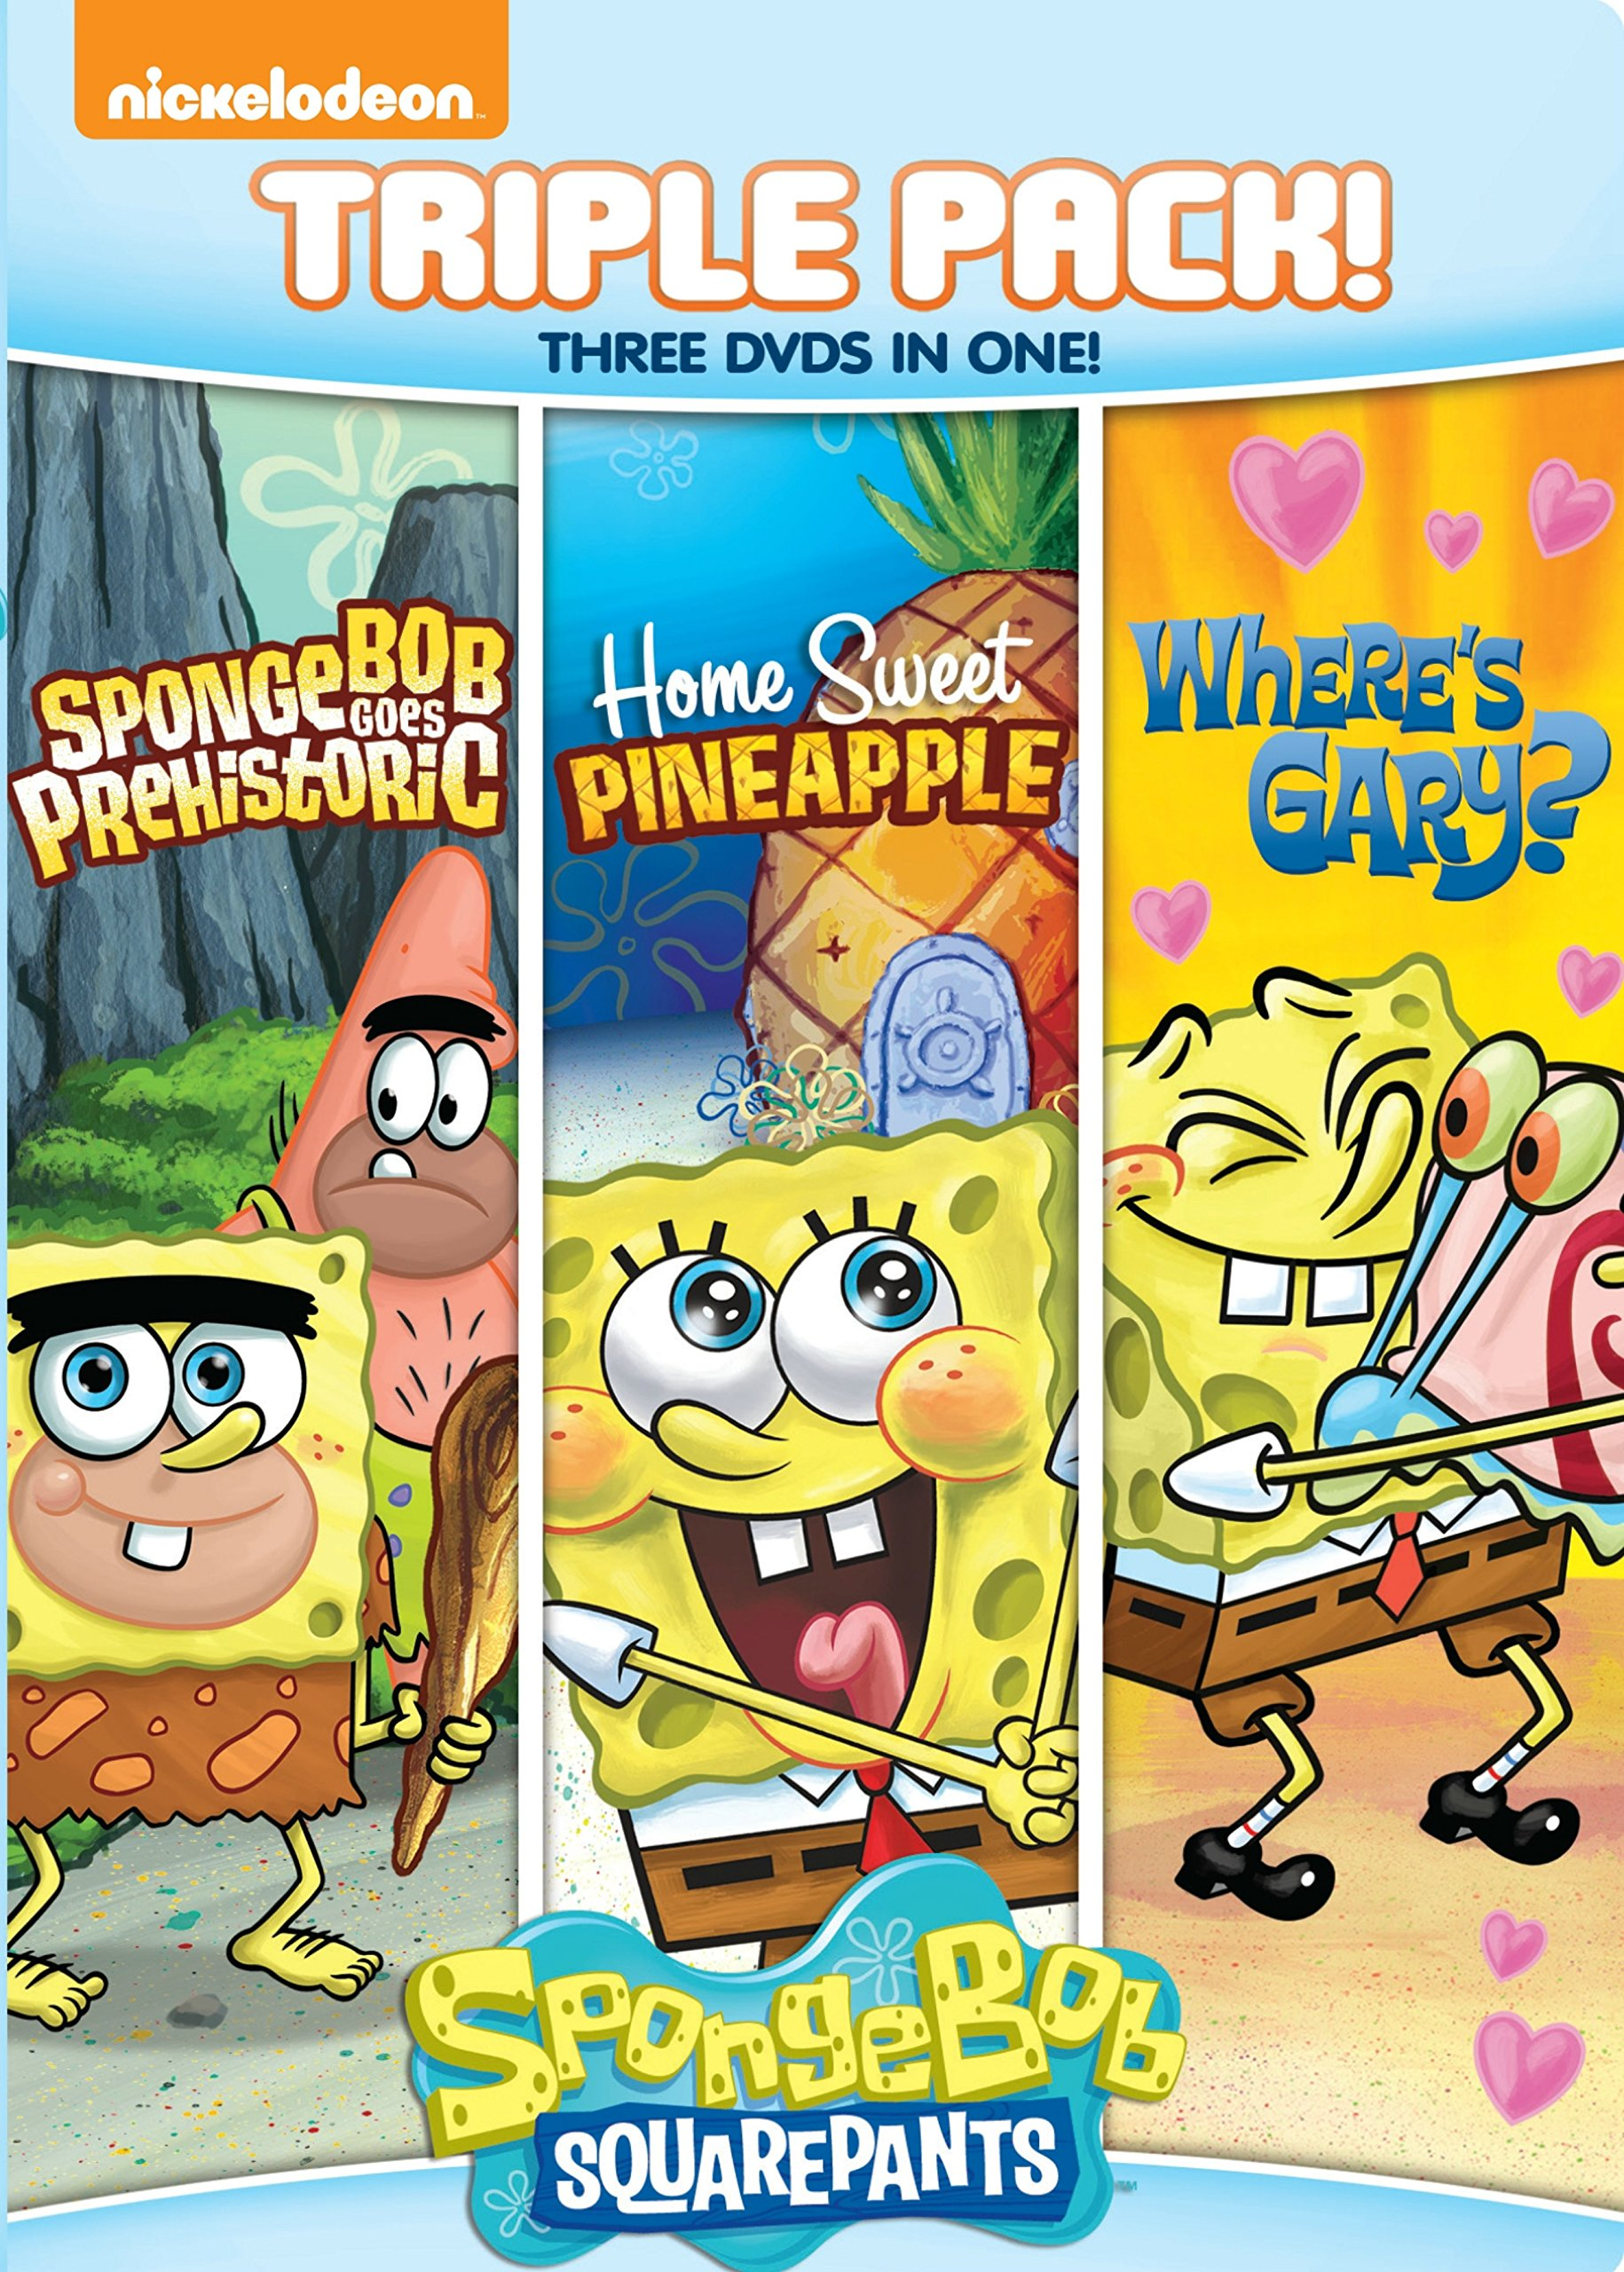 triple pack 4 encyclopedia spongebobia fandom powered by wikia